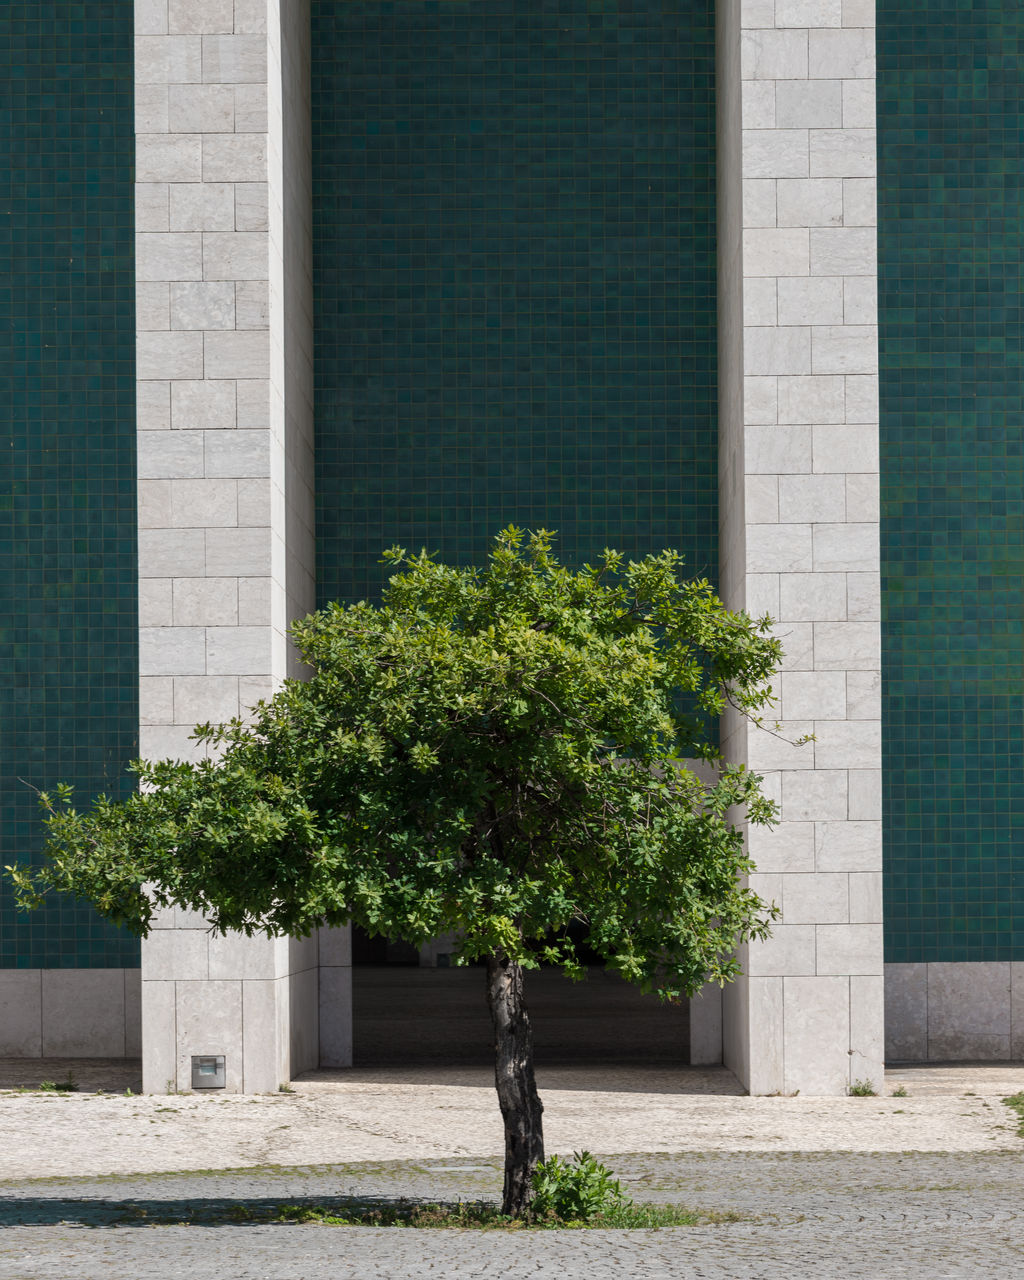 TREE BY BUILDING